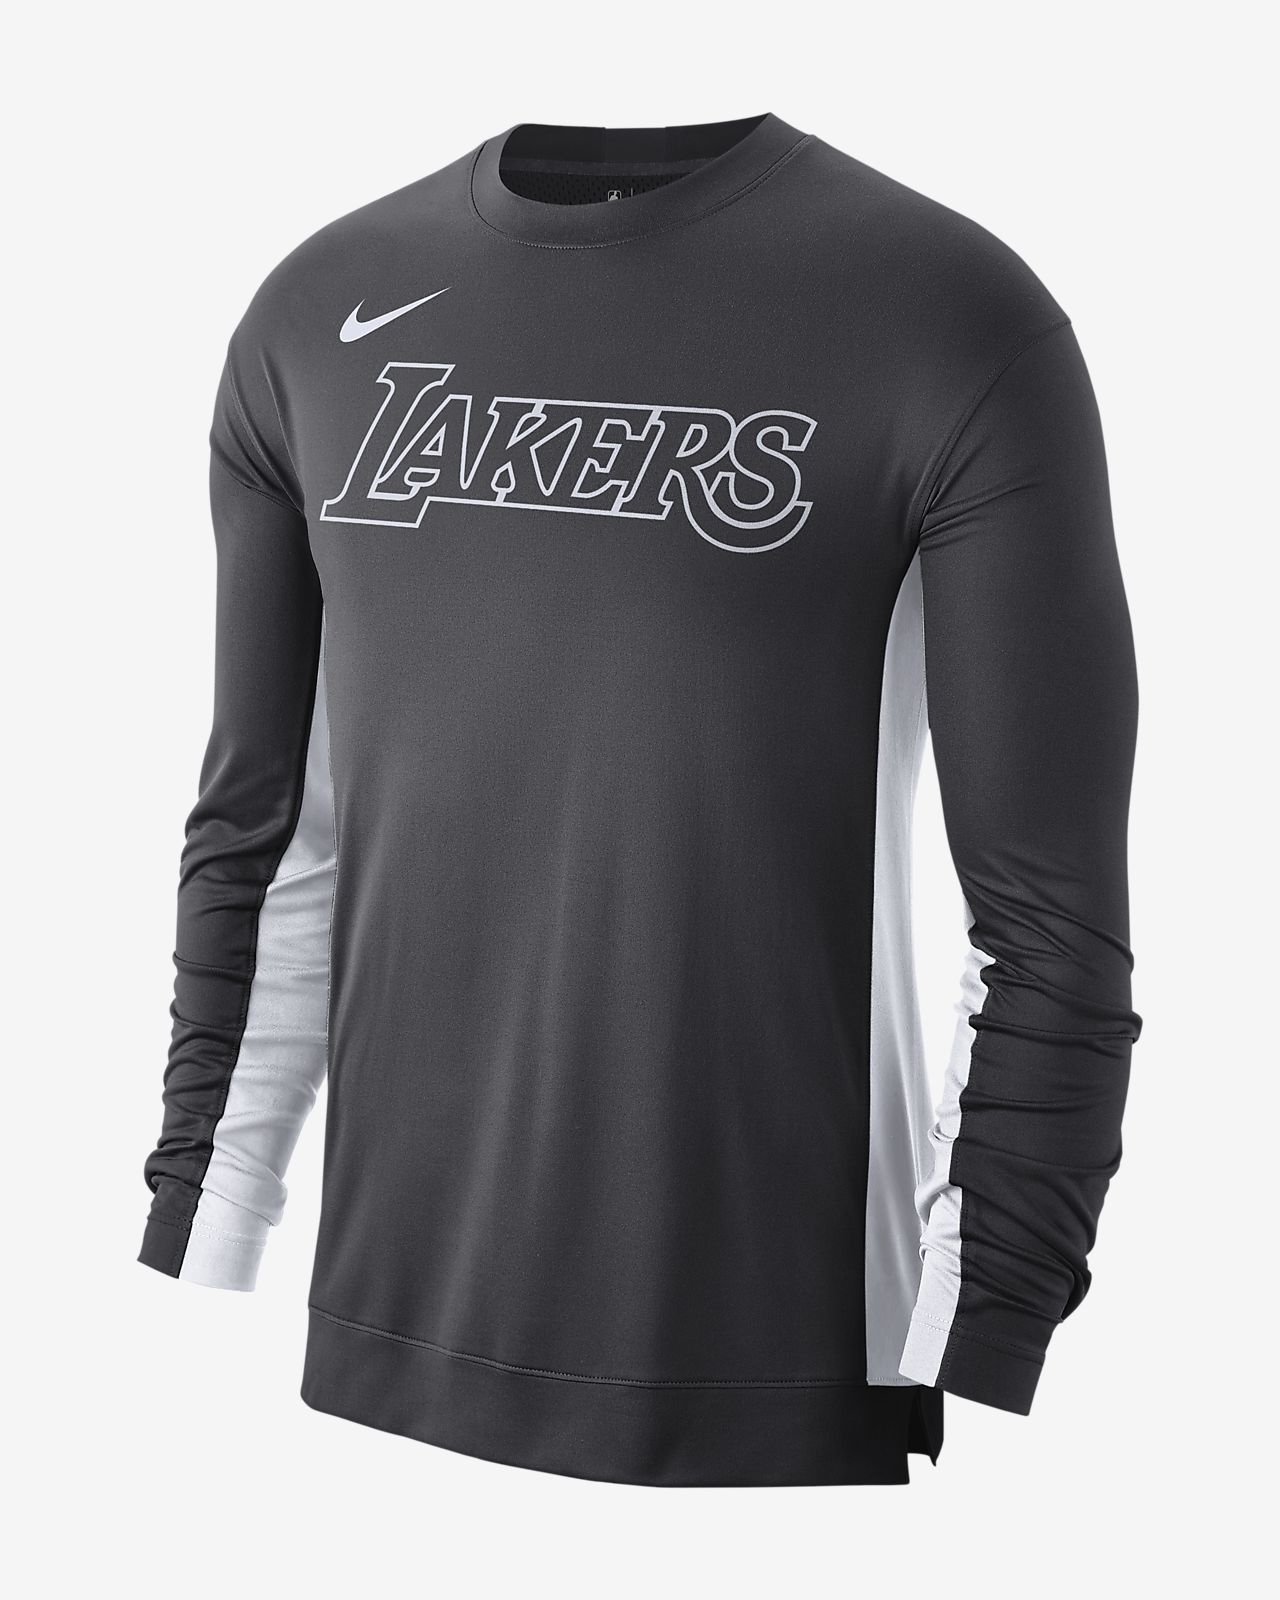 Playera de entrenamiento de la NBA para hombre Los Angeles Lakers Nike Dri-FIT